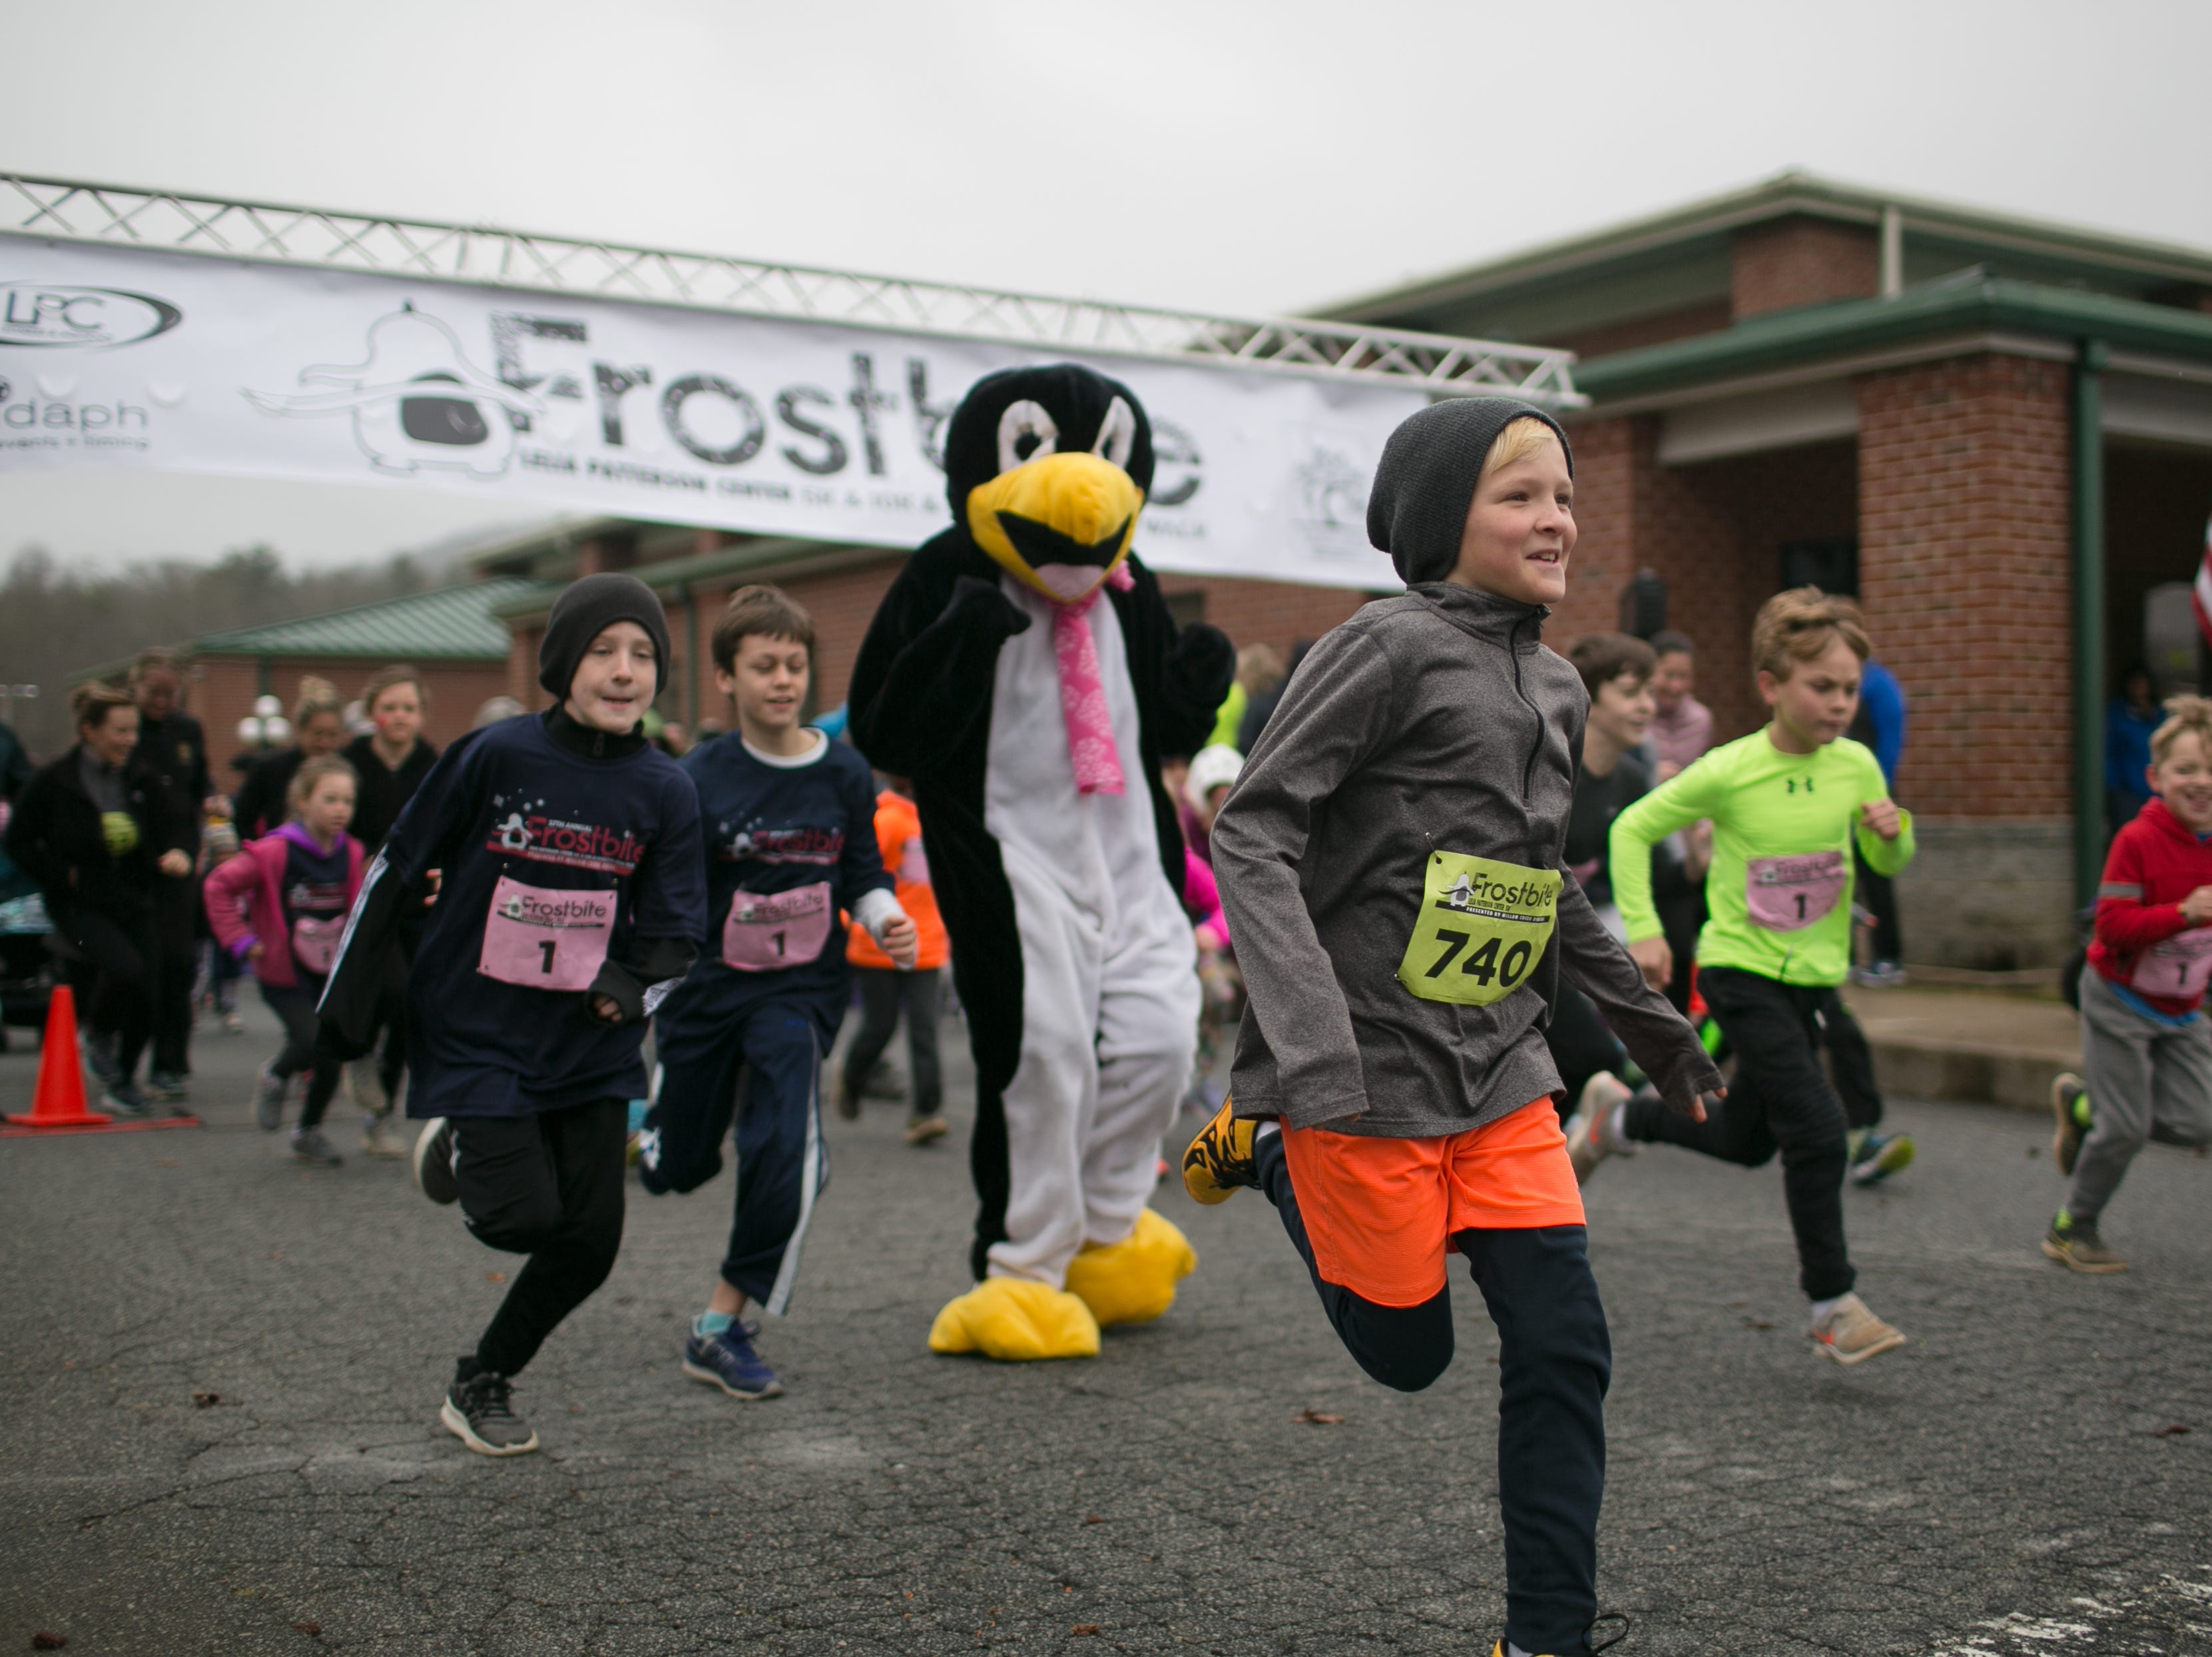 Scenes from the 27th Annual Frostbite 10K, 5K and Fun Run on Feb. 17, 2019, at the Lelia Patterson Center in Fletcher.